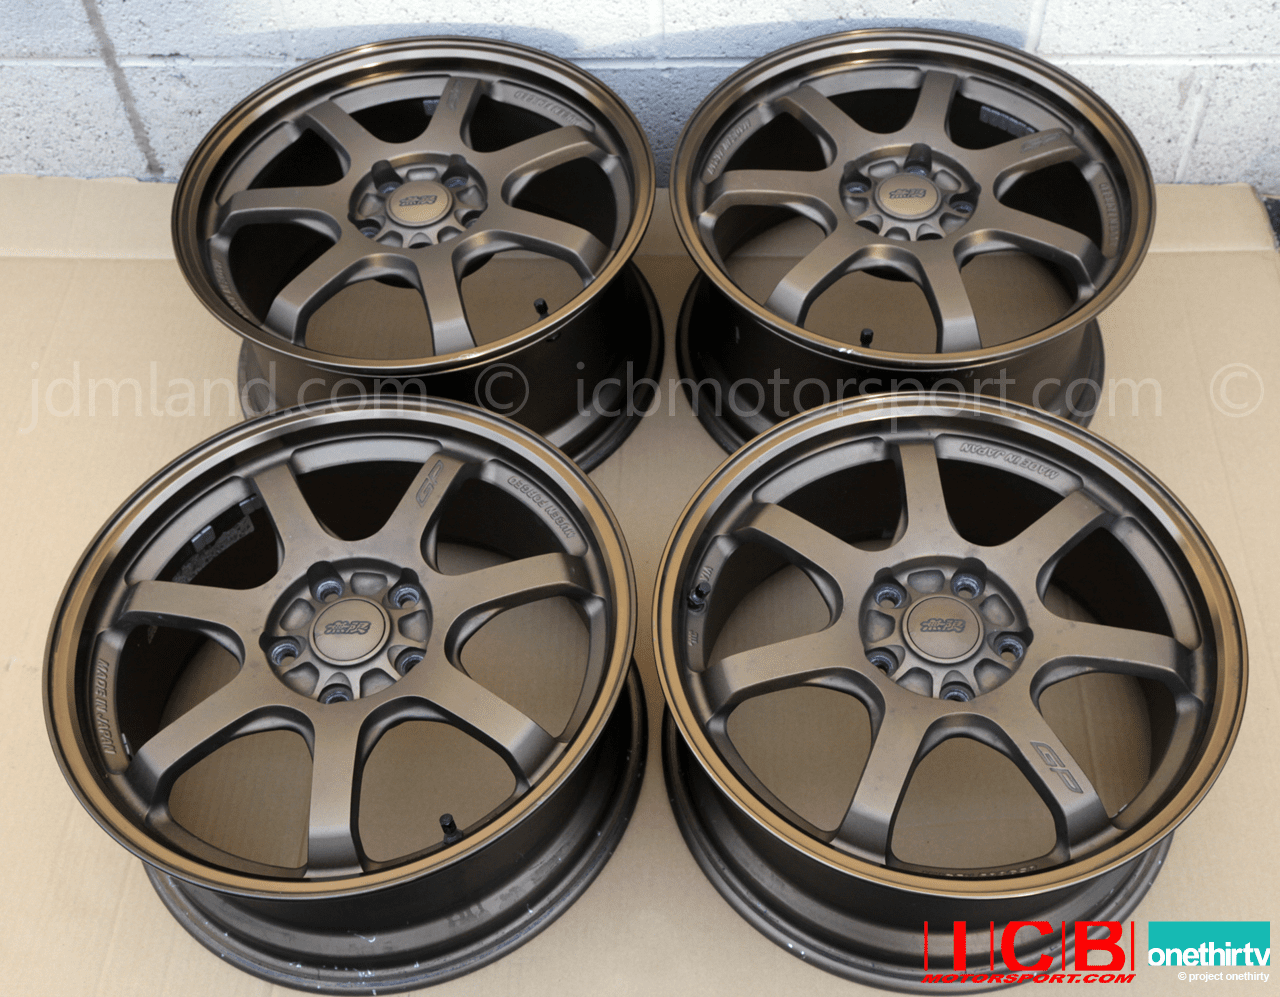 Used Mugen GP Forged Wheel Bronze 17X7.5 17X8.5 S2000 AP1 AP2 SOLD